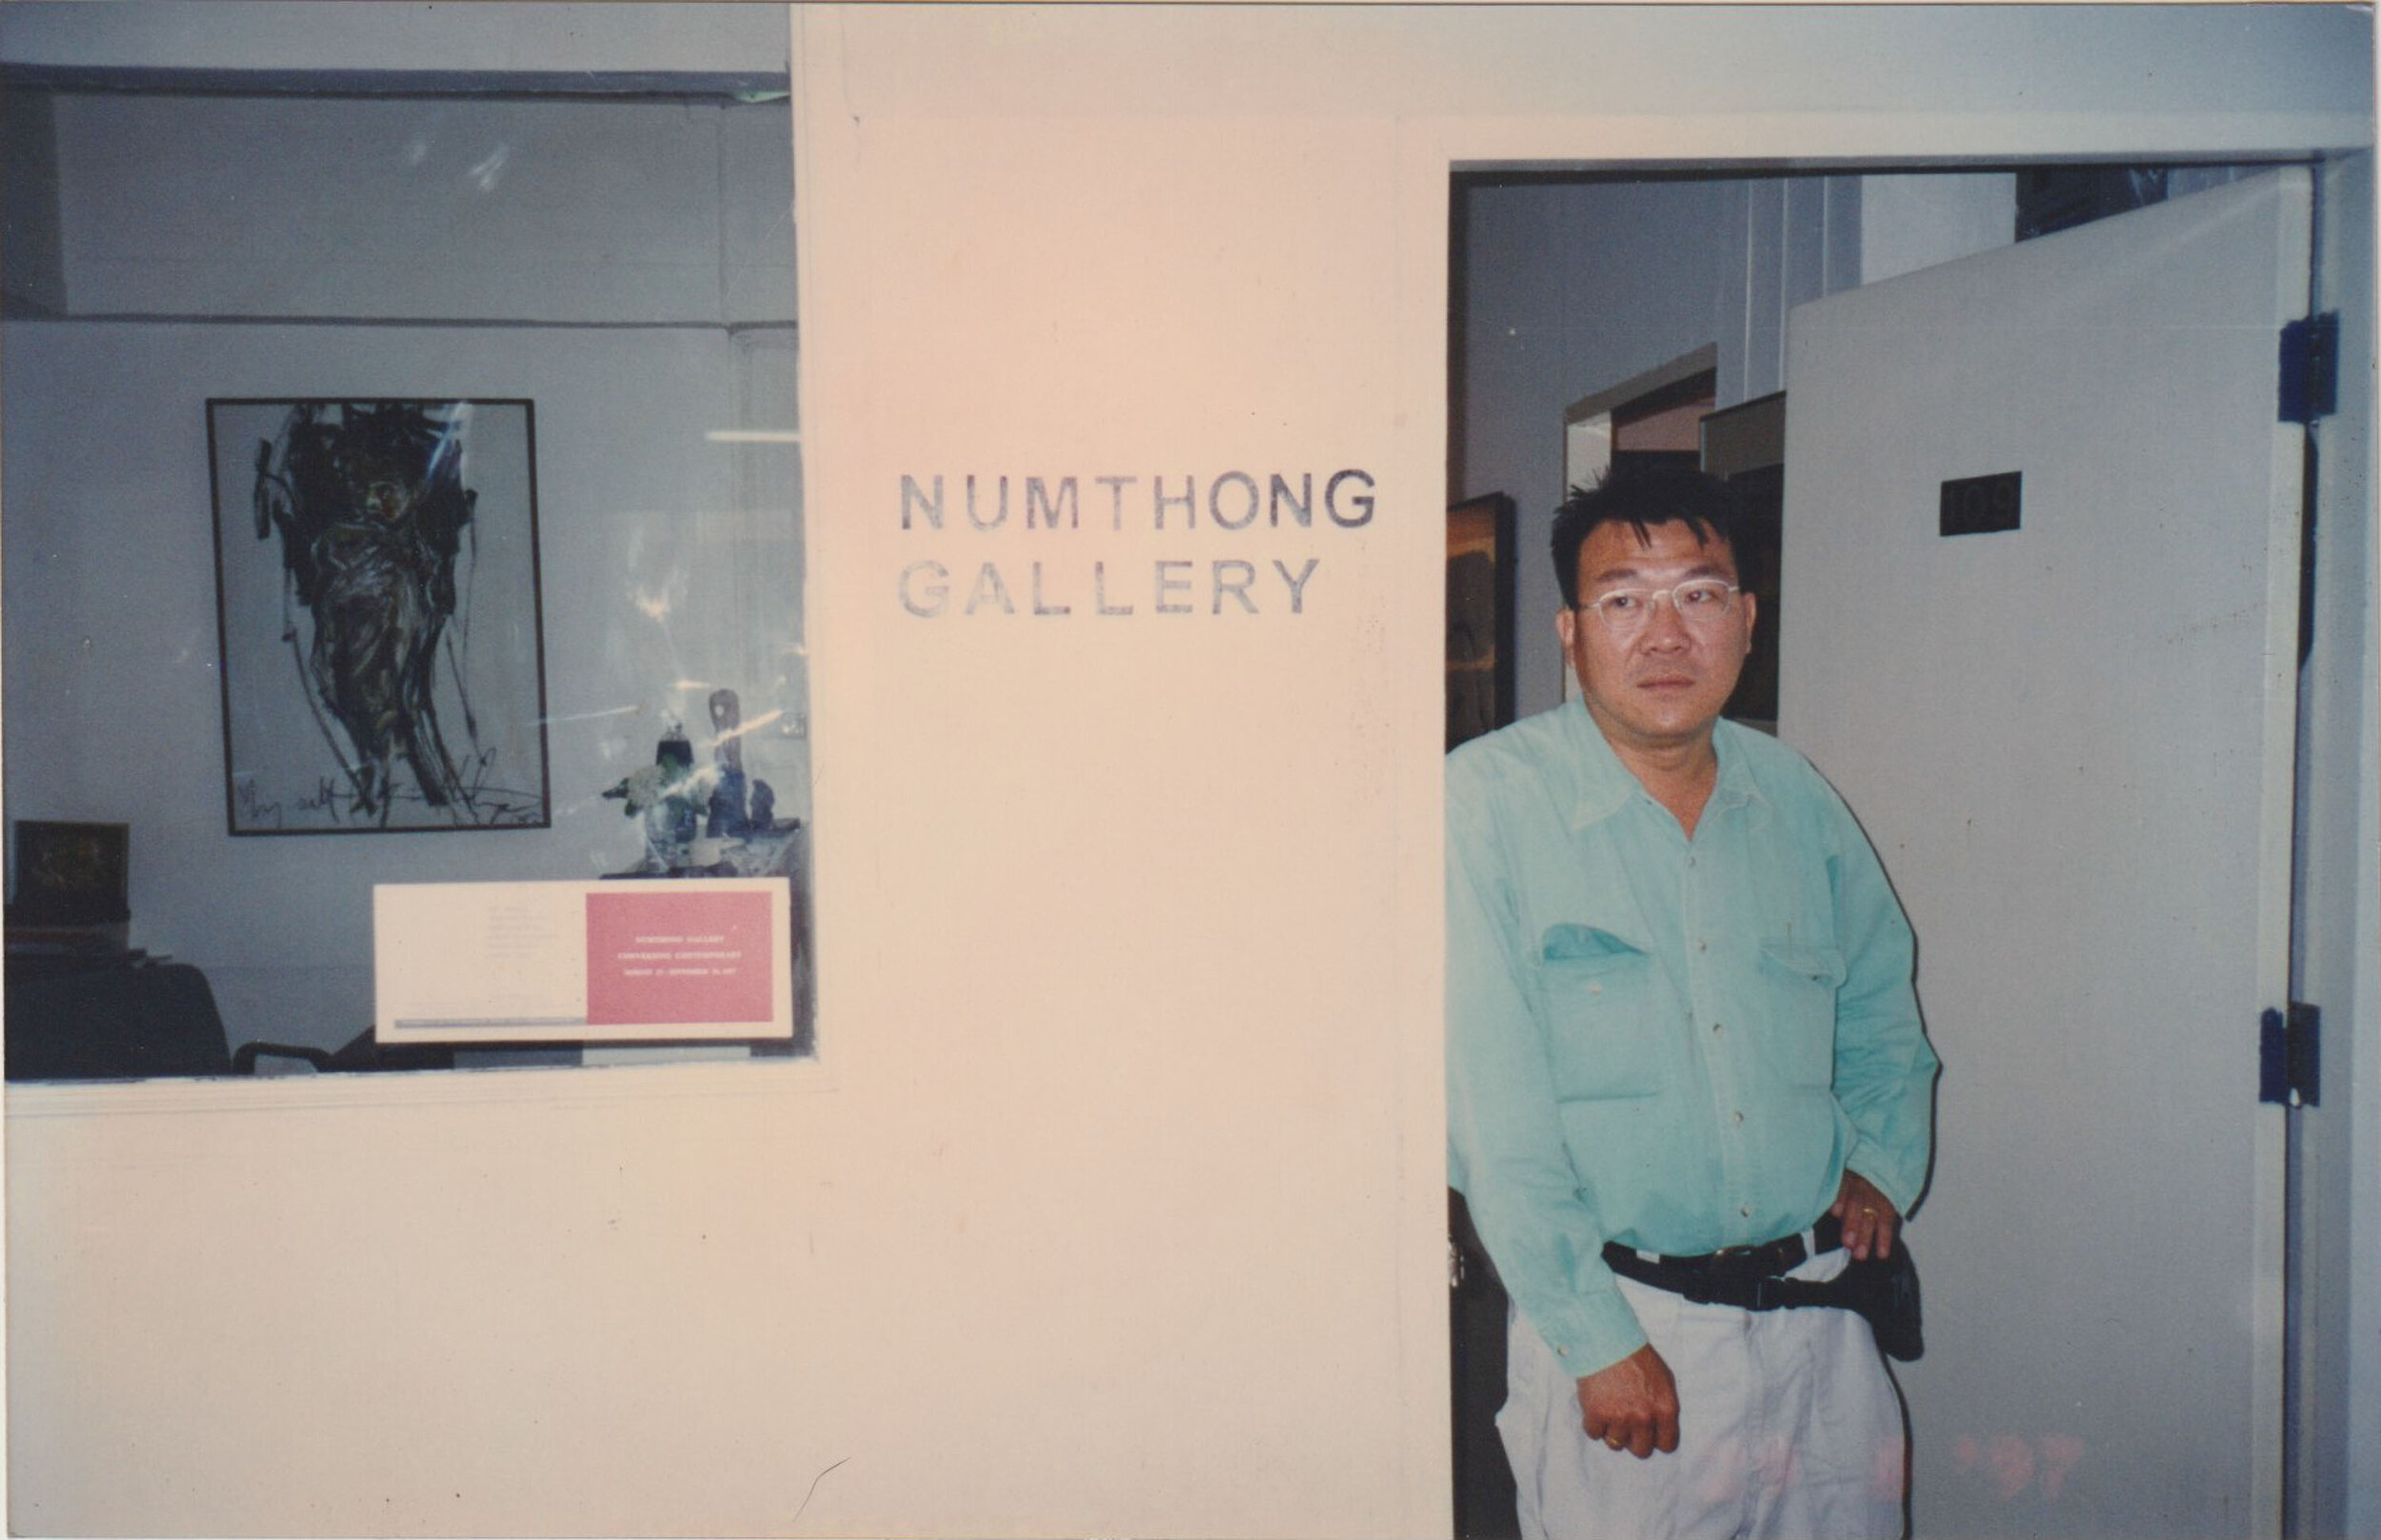 Archival photo from 1997. Image courtesy of Numthong Gallery.